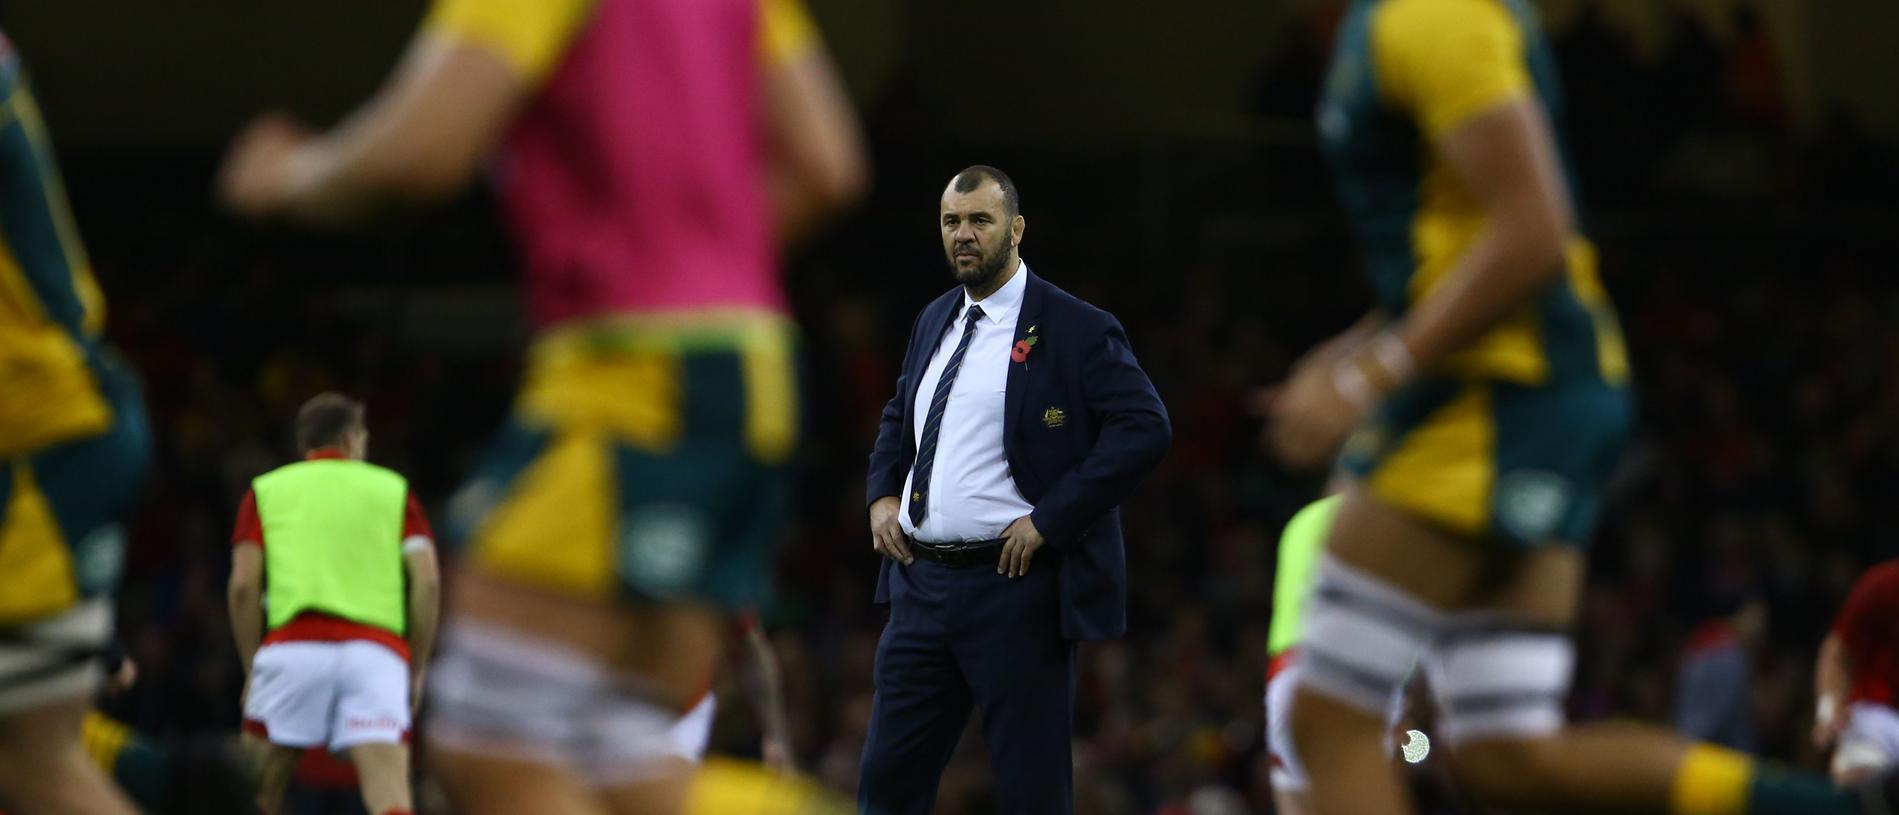 Australian head coach Michael Cheika watches warm up before the international rugby union test match between Wales and Australia at the Principality stadium in Cardiff, south Wales, on November 10, 2018. (Photo by GEOFF CADDICK / AFP) / RESTRICTED TO EDITORIAL USE -use in books subject to Welsh Rugby Union (WRU) approval